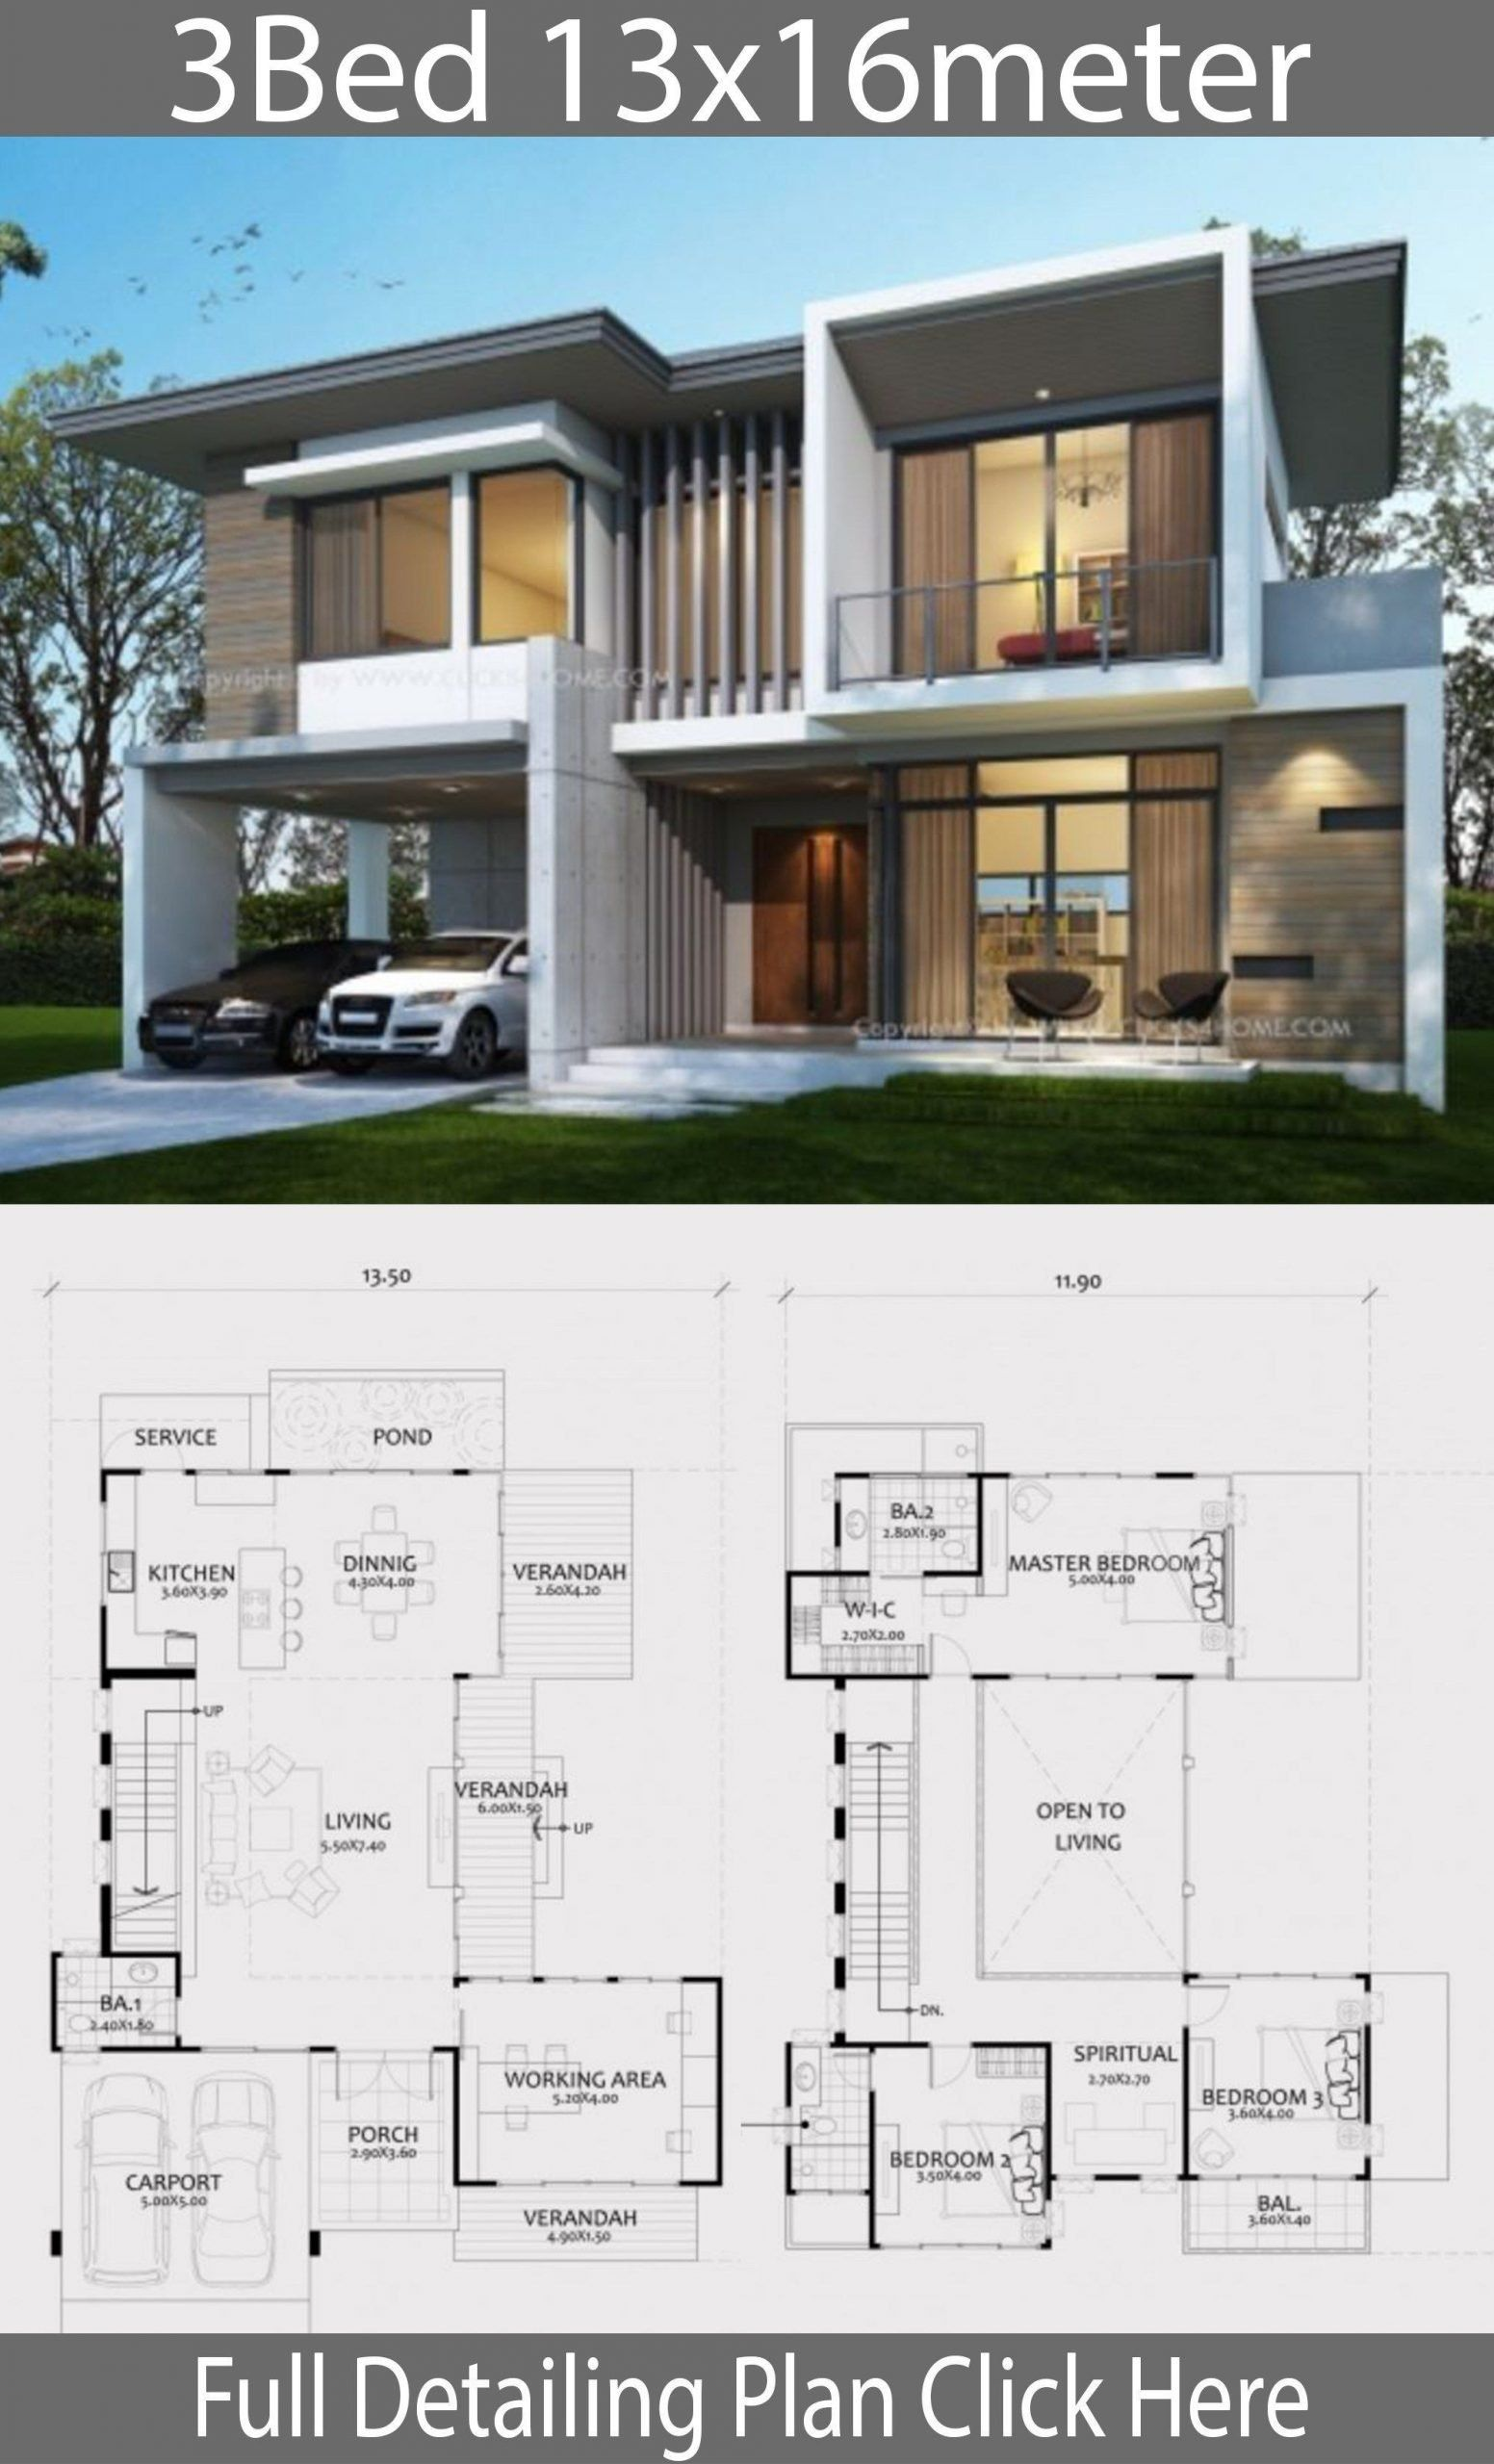 New Modern House Plans Home Design Plan 13x16m With 3 Bedrooms Beautiful House Plans Architectural House Plans Modern House Plans